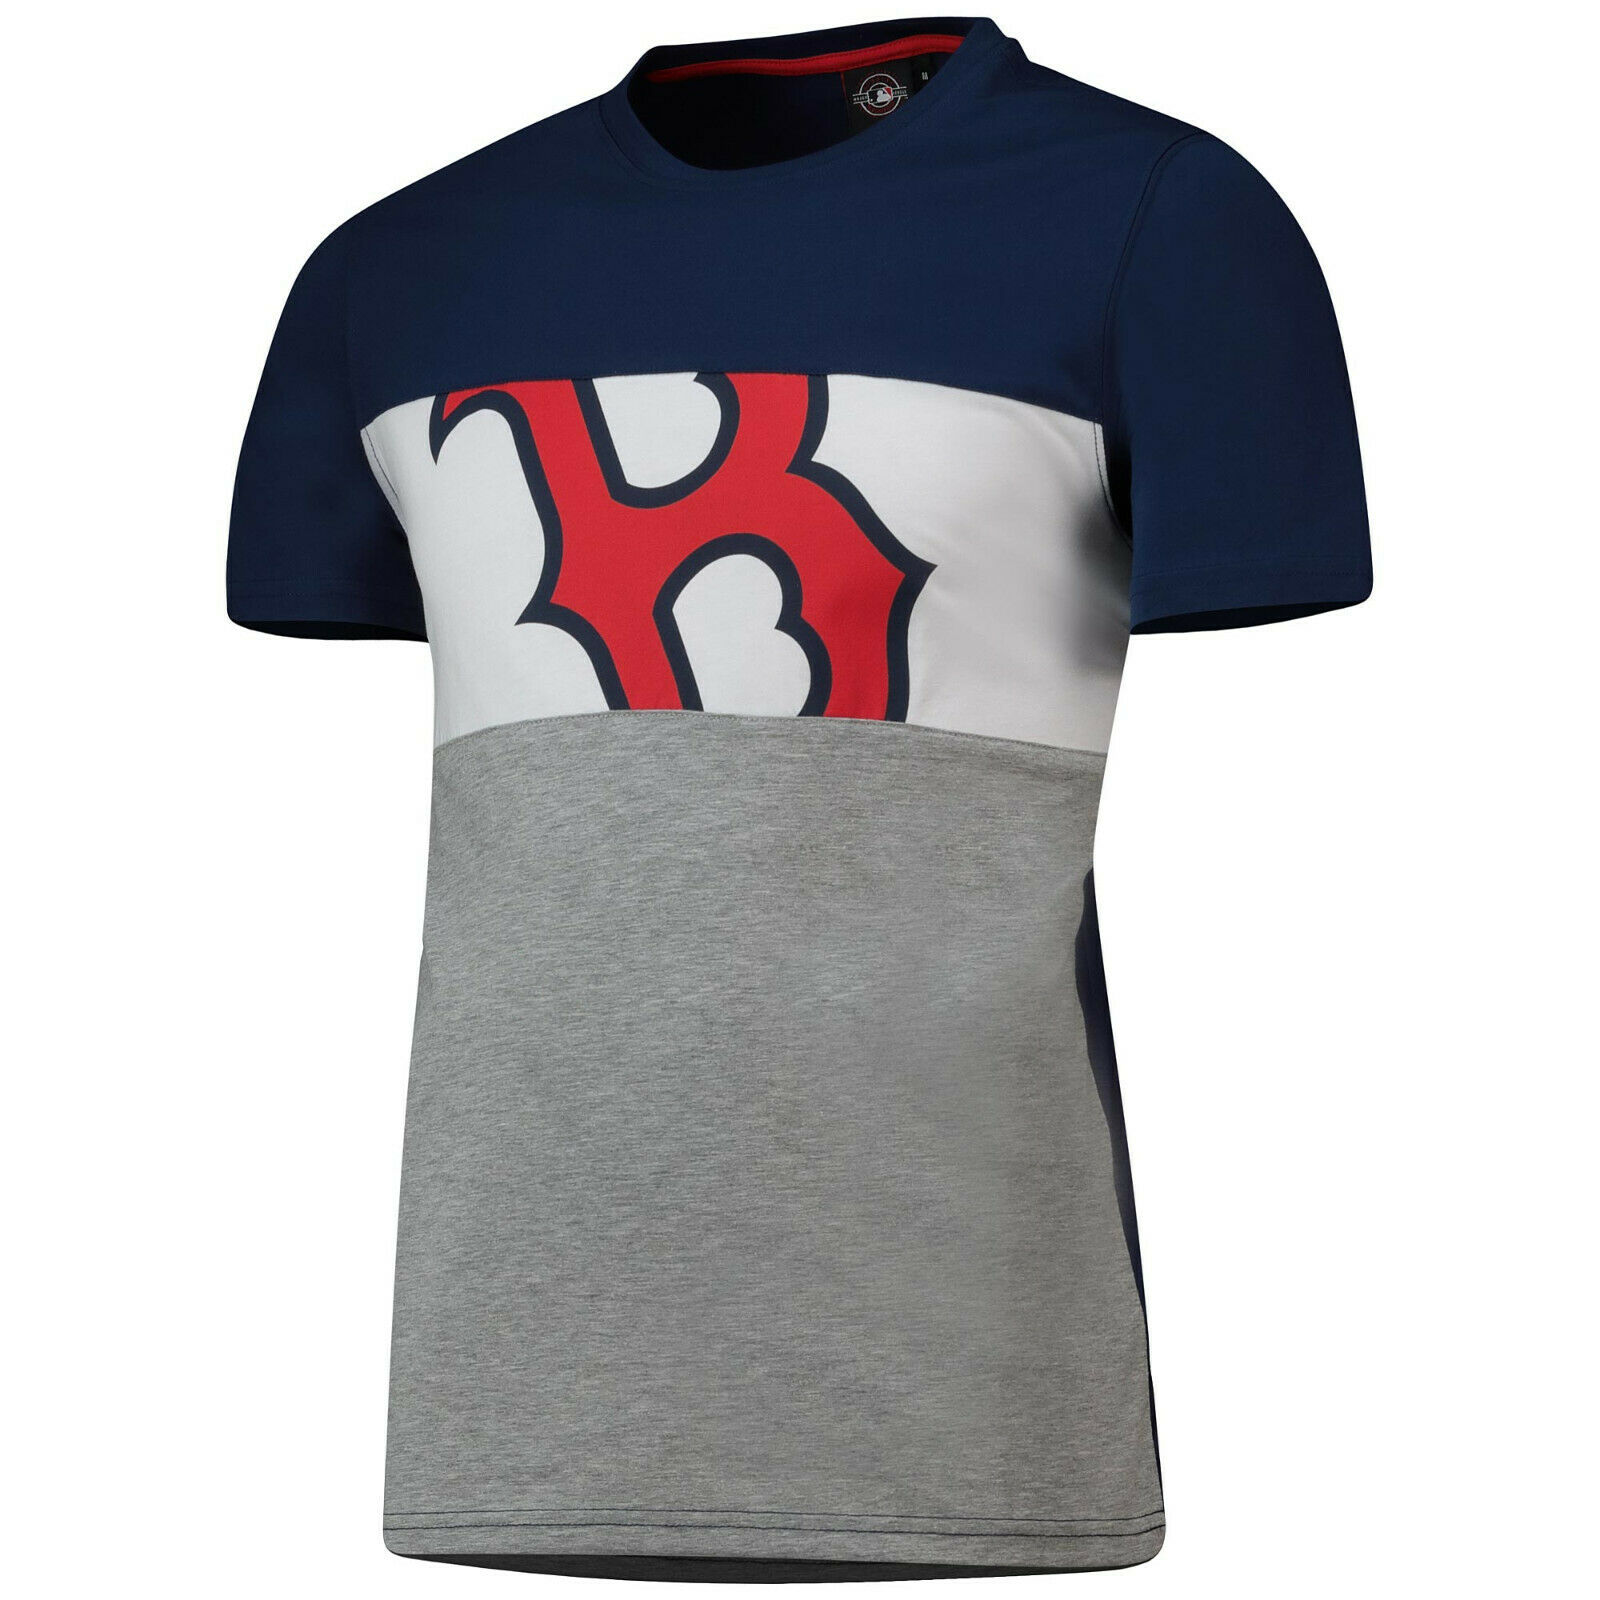 MLB béisbol Boston rojo Sox Sox Sox t-shirt cut Sew logotipo cfbe69